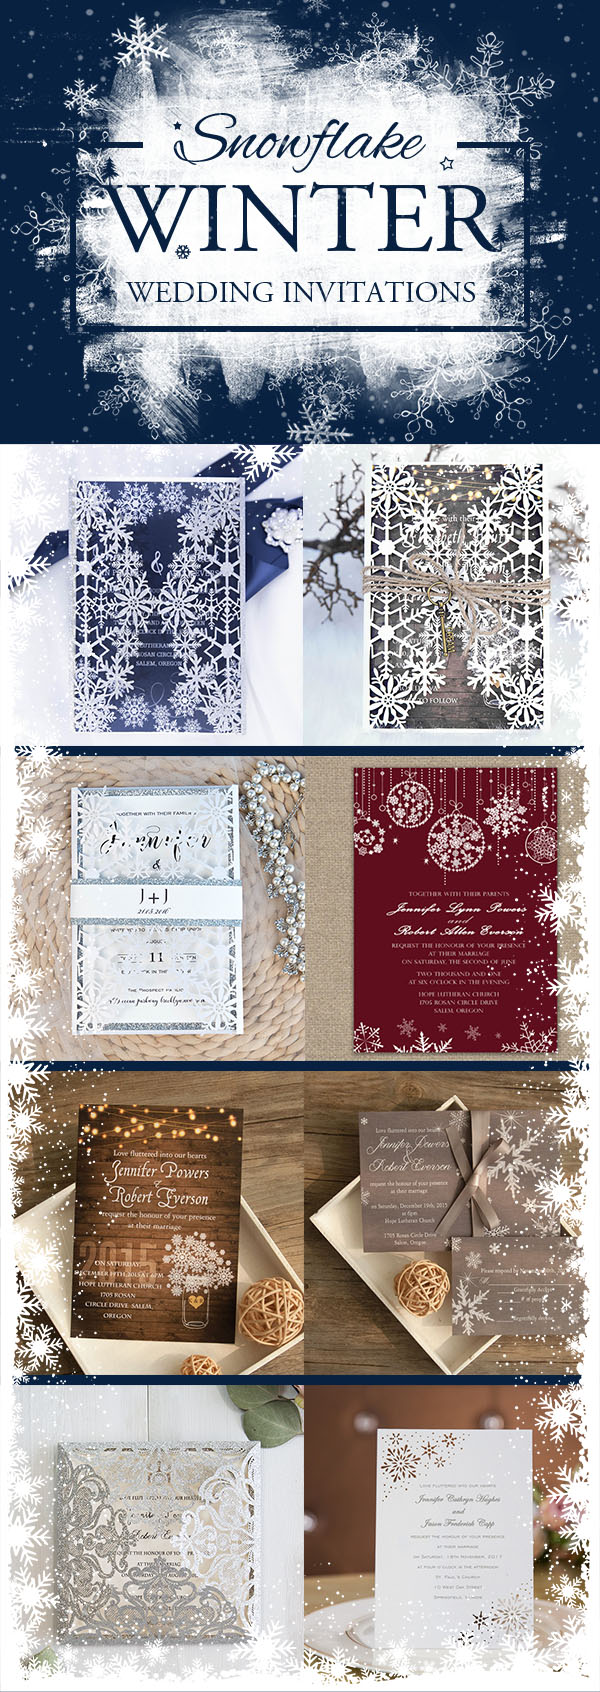 Charming Snowflake Winter Wedding Invitations from Elegant Wedding Invites